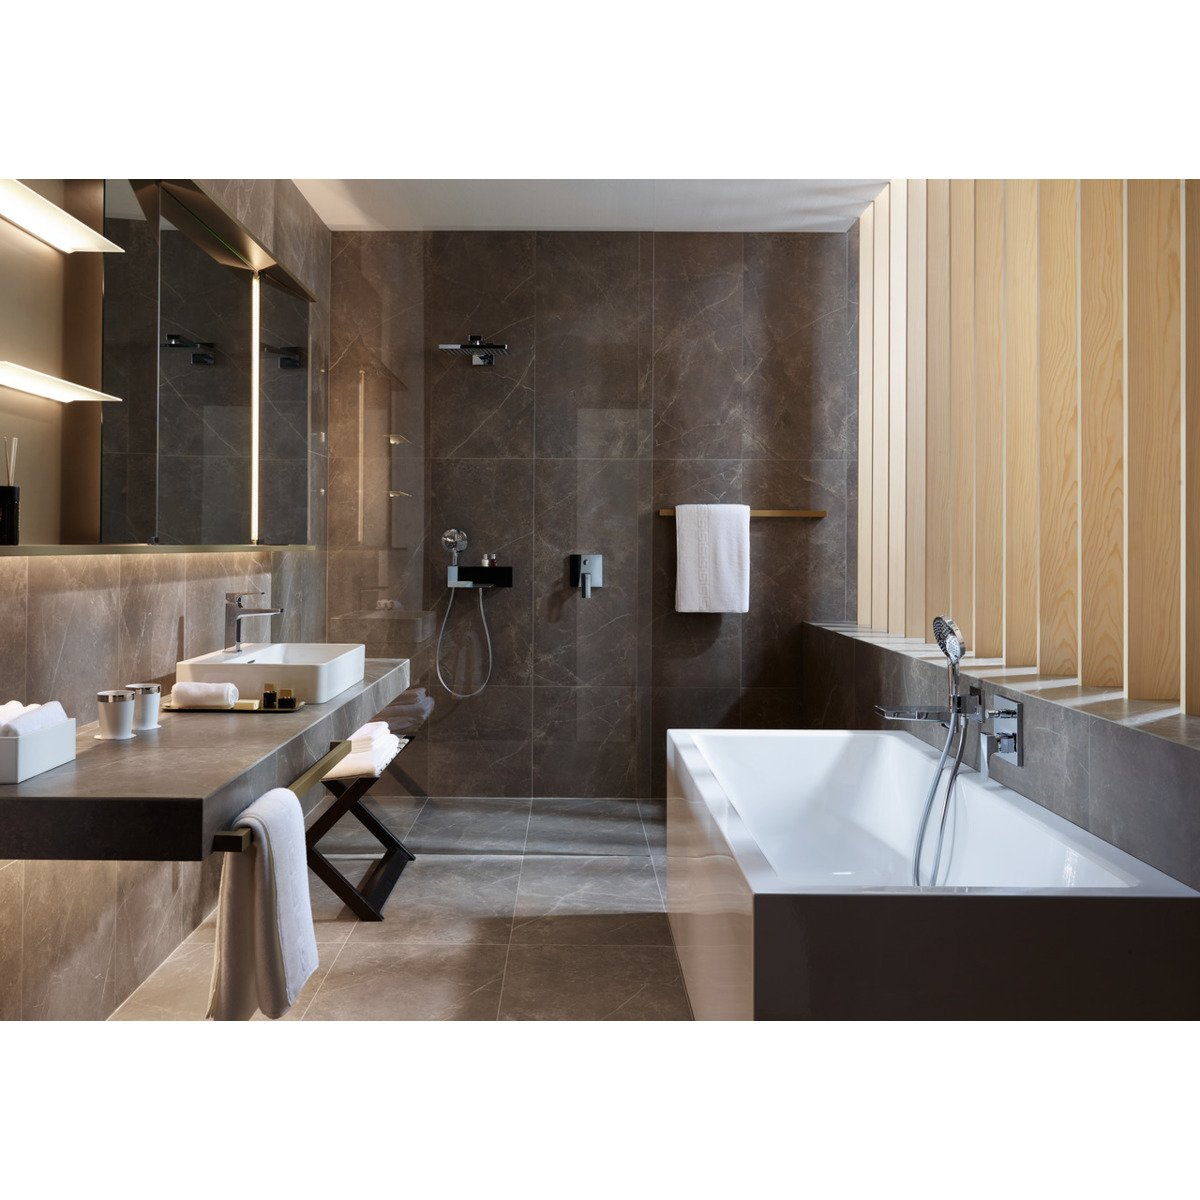 hansgrohe raindance select s120 handdouche 3jet chroom. Black Bedroom Furniture Sets. Home Design Ideas